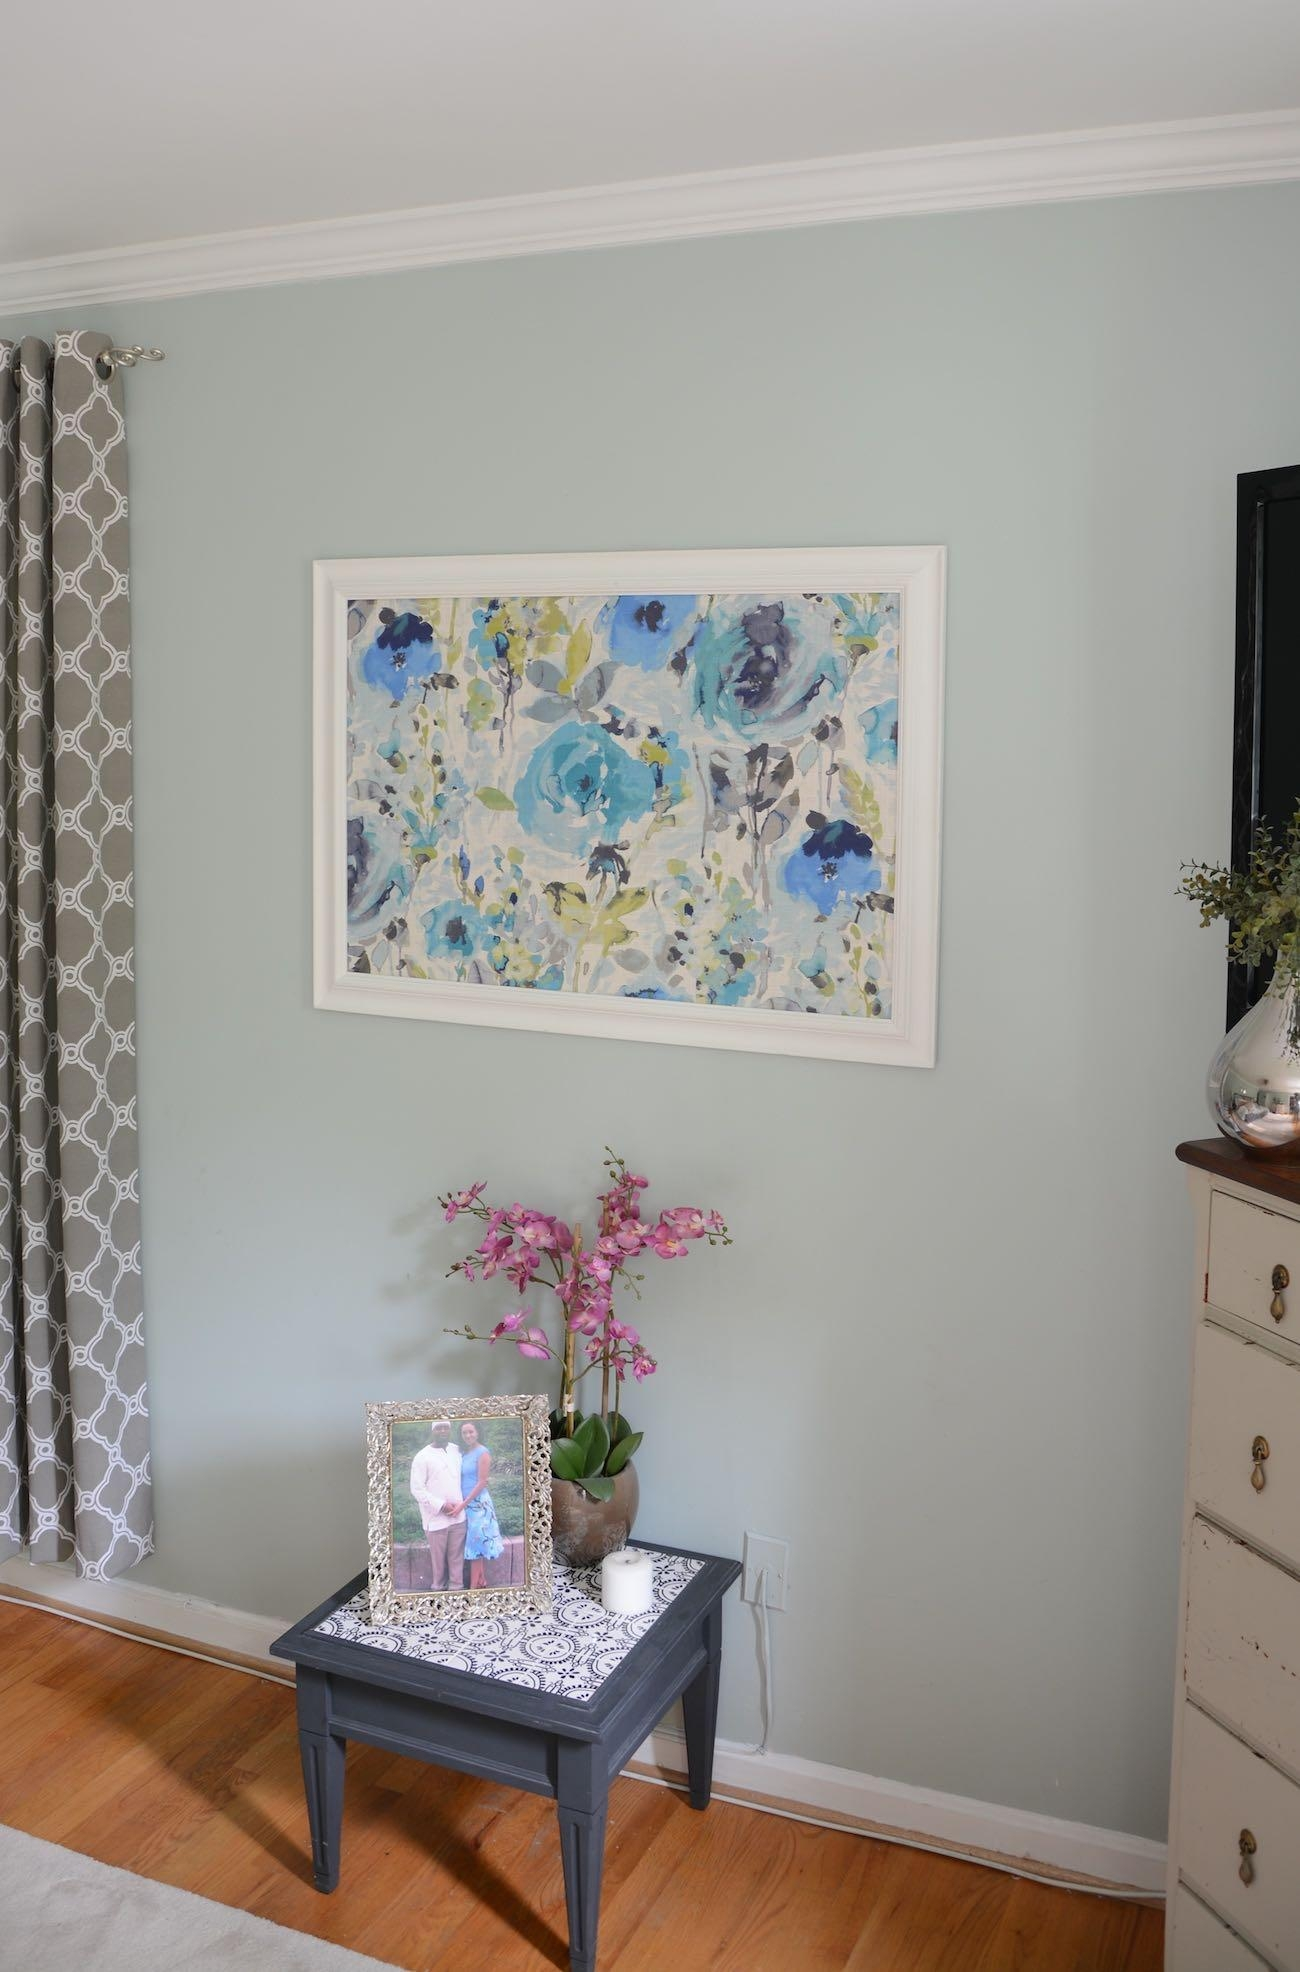 How To Frame Fabric For Wall Art With A Picture Frame Regarding Framed Fabric Wall Art (View 3 of 20)